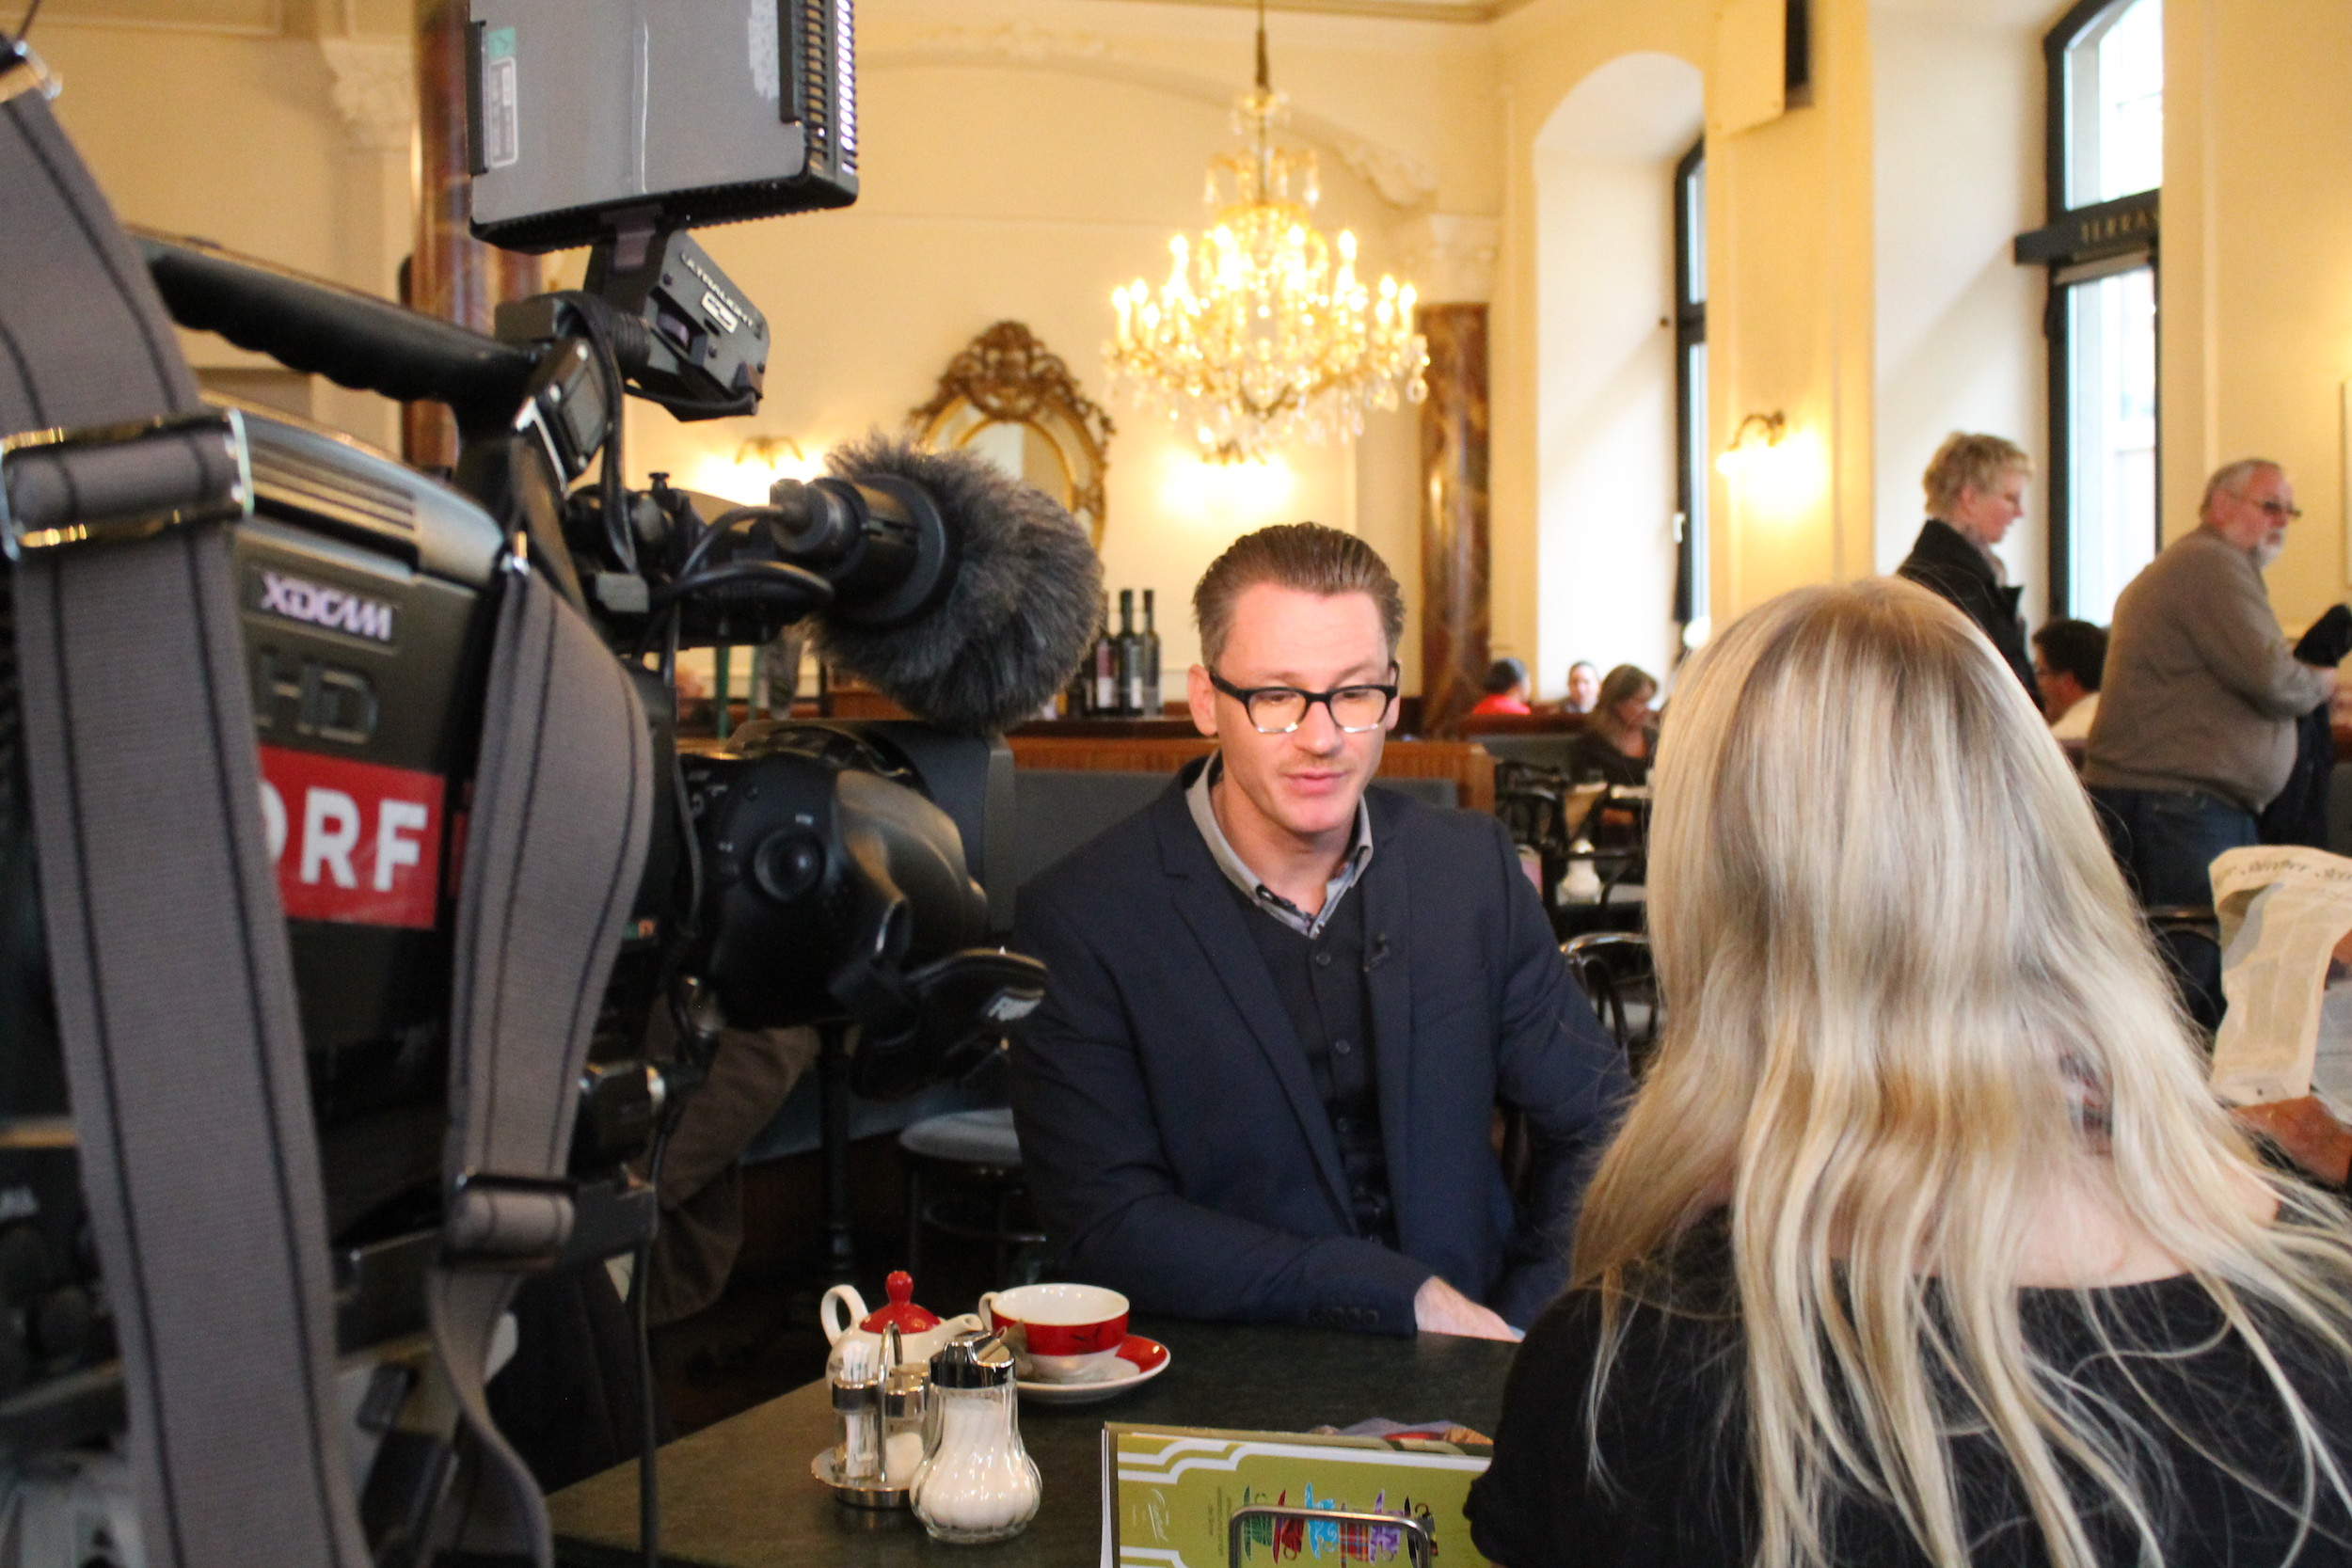 orf-interview-innsbruck-1